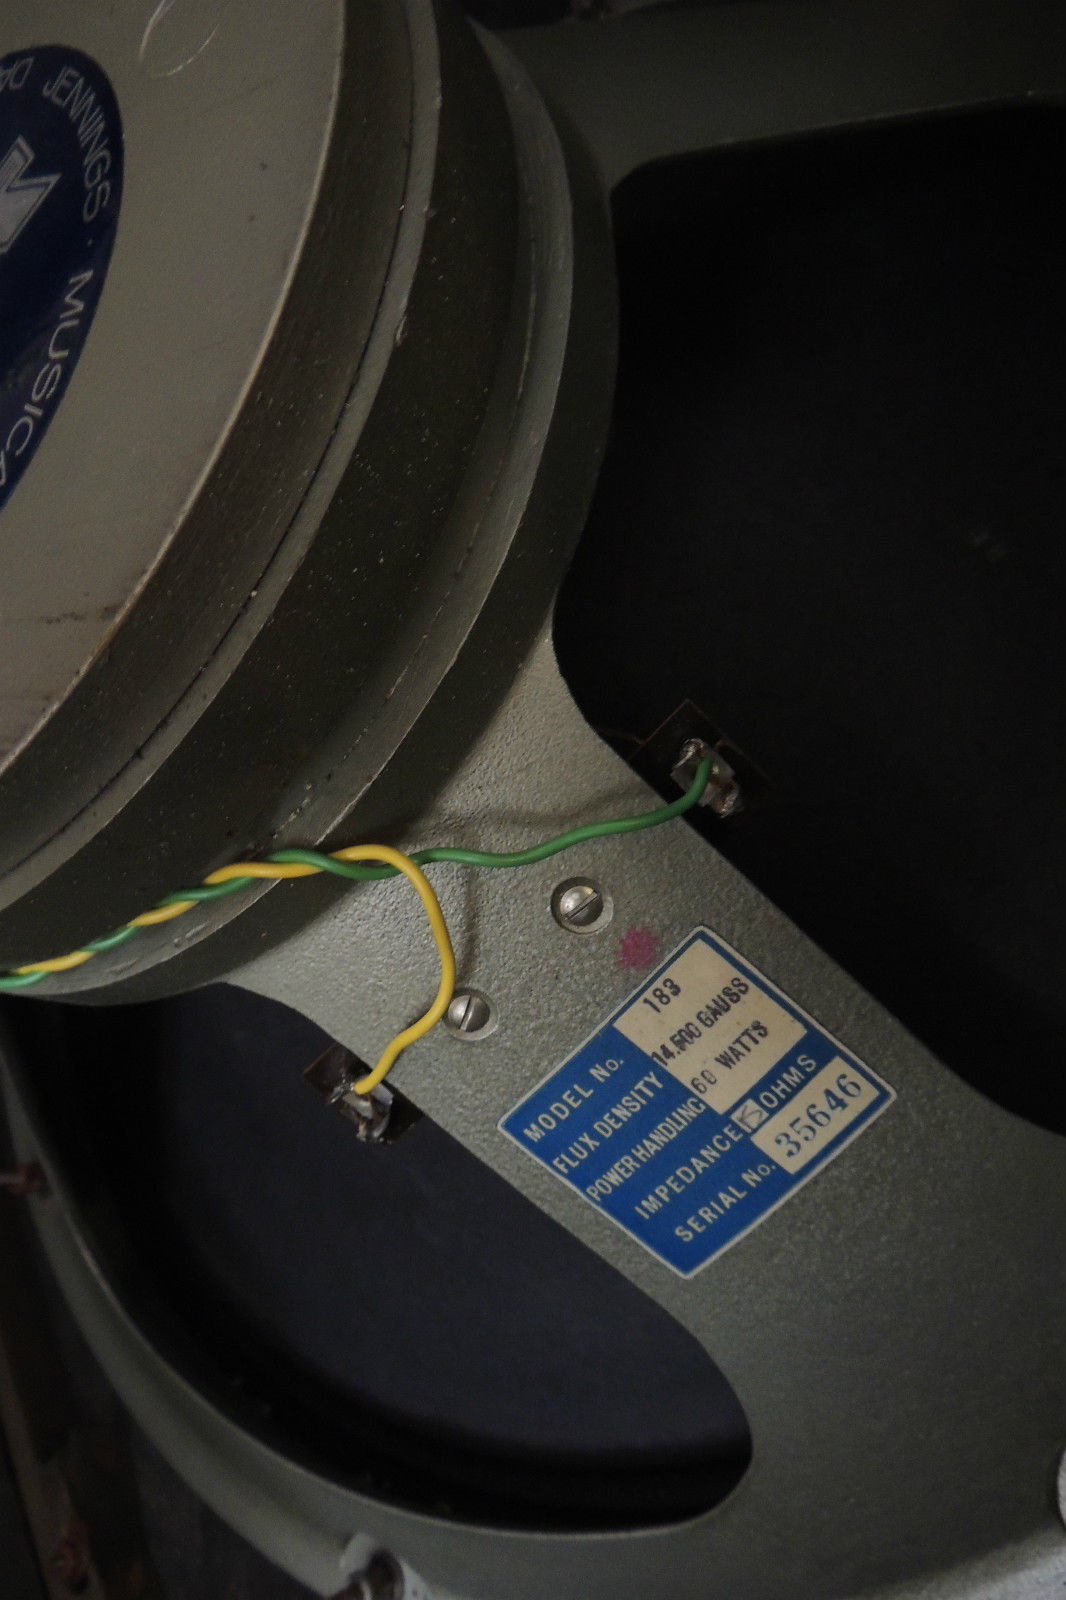 Goodmans 18 Audiom 91 And Fane Bass Speakers Speaker Ohm Wiring A Pricelist Undated From The 1960s 183 Was 25 4 Shillings Cheaper Therefore Than By 1 16